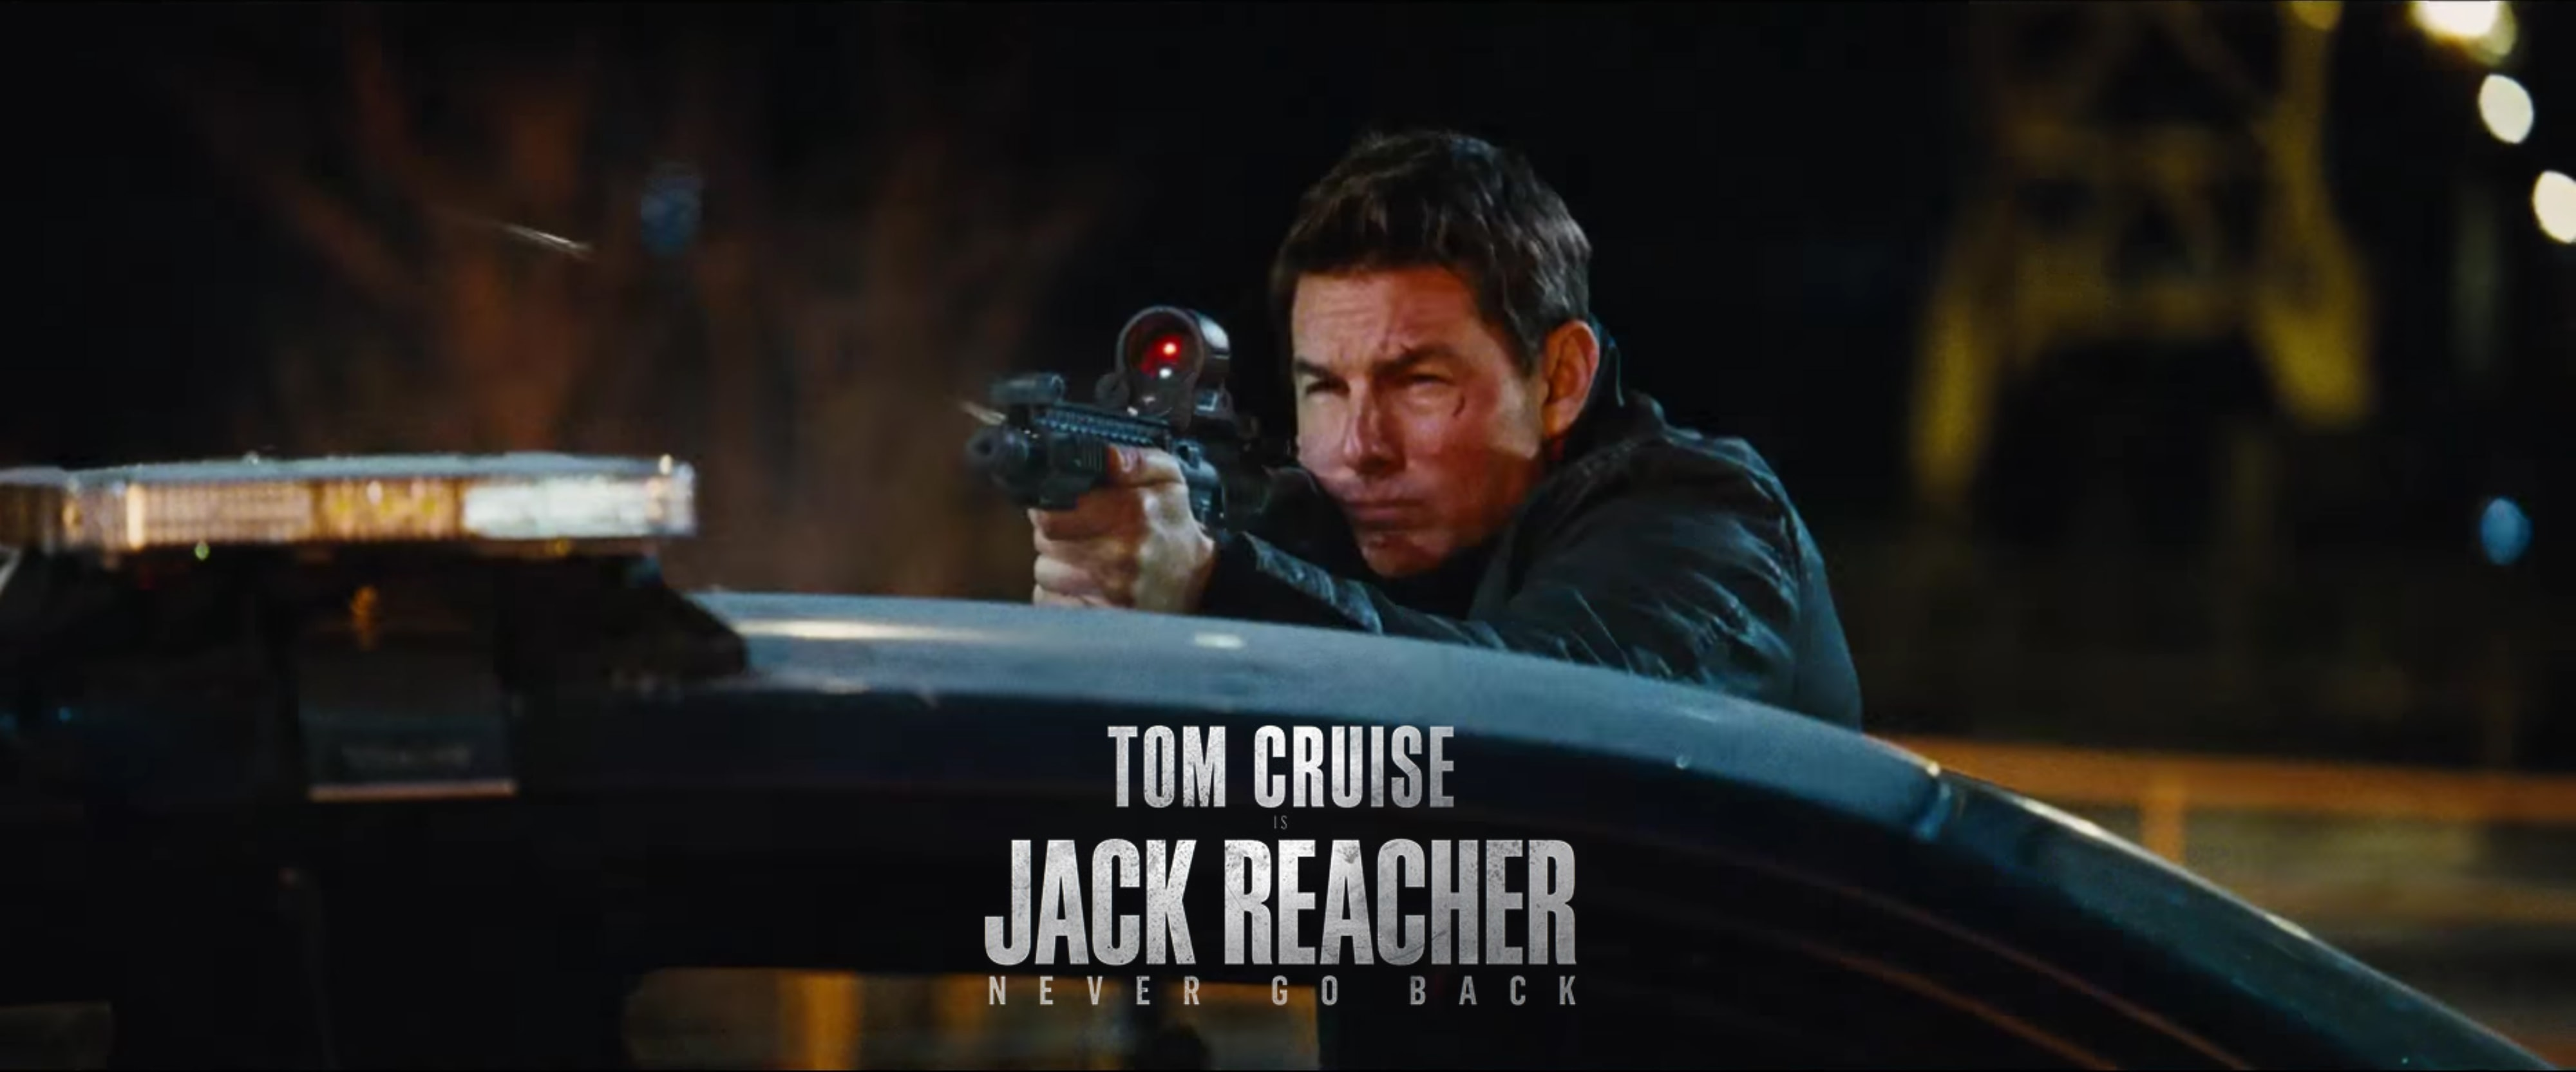 Jack Reacher: Never Go Back Pictures